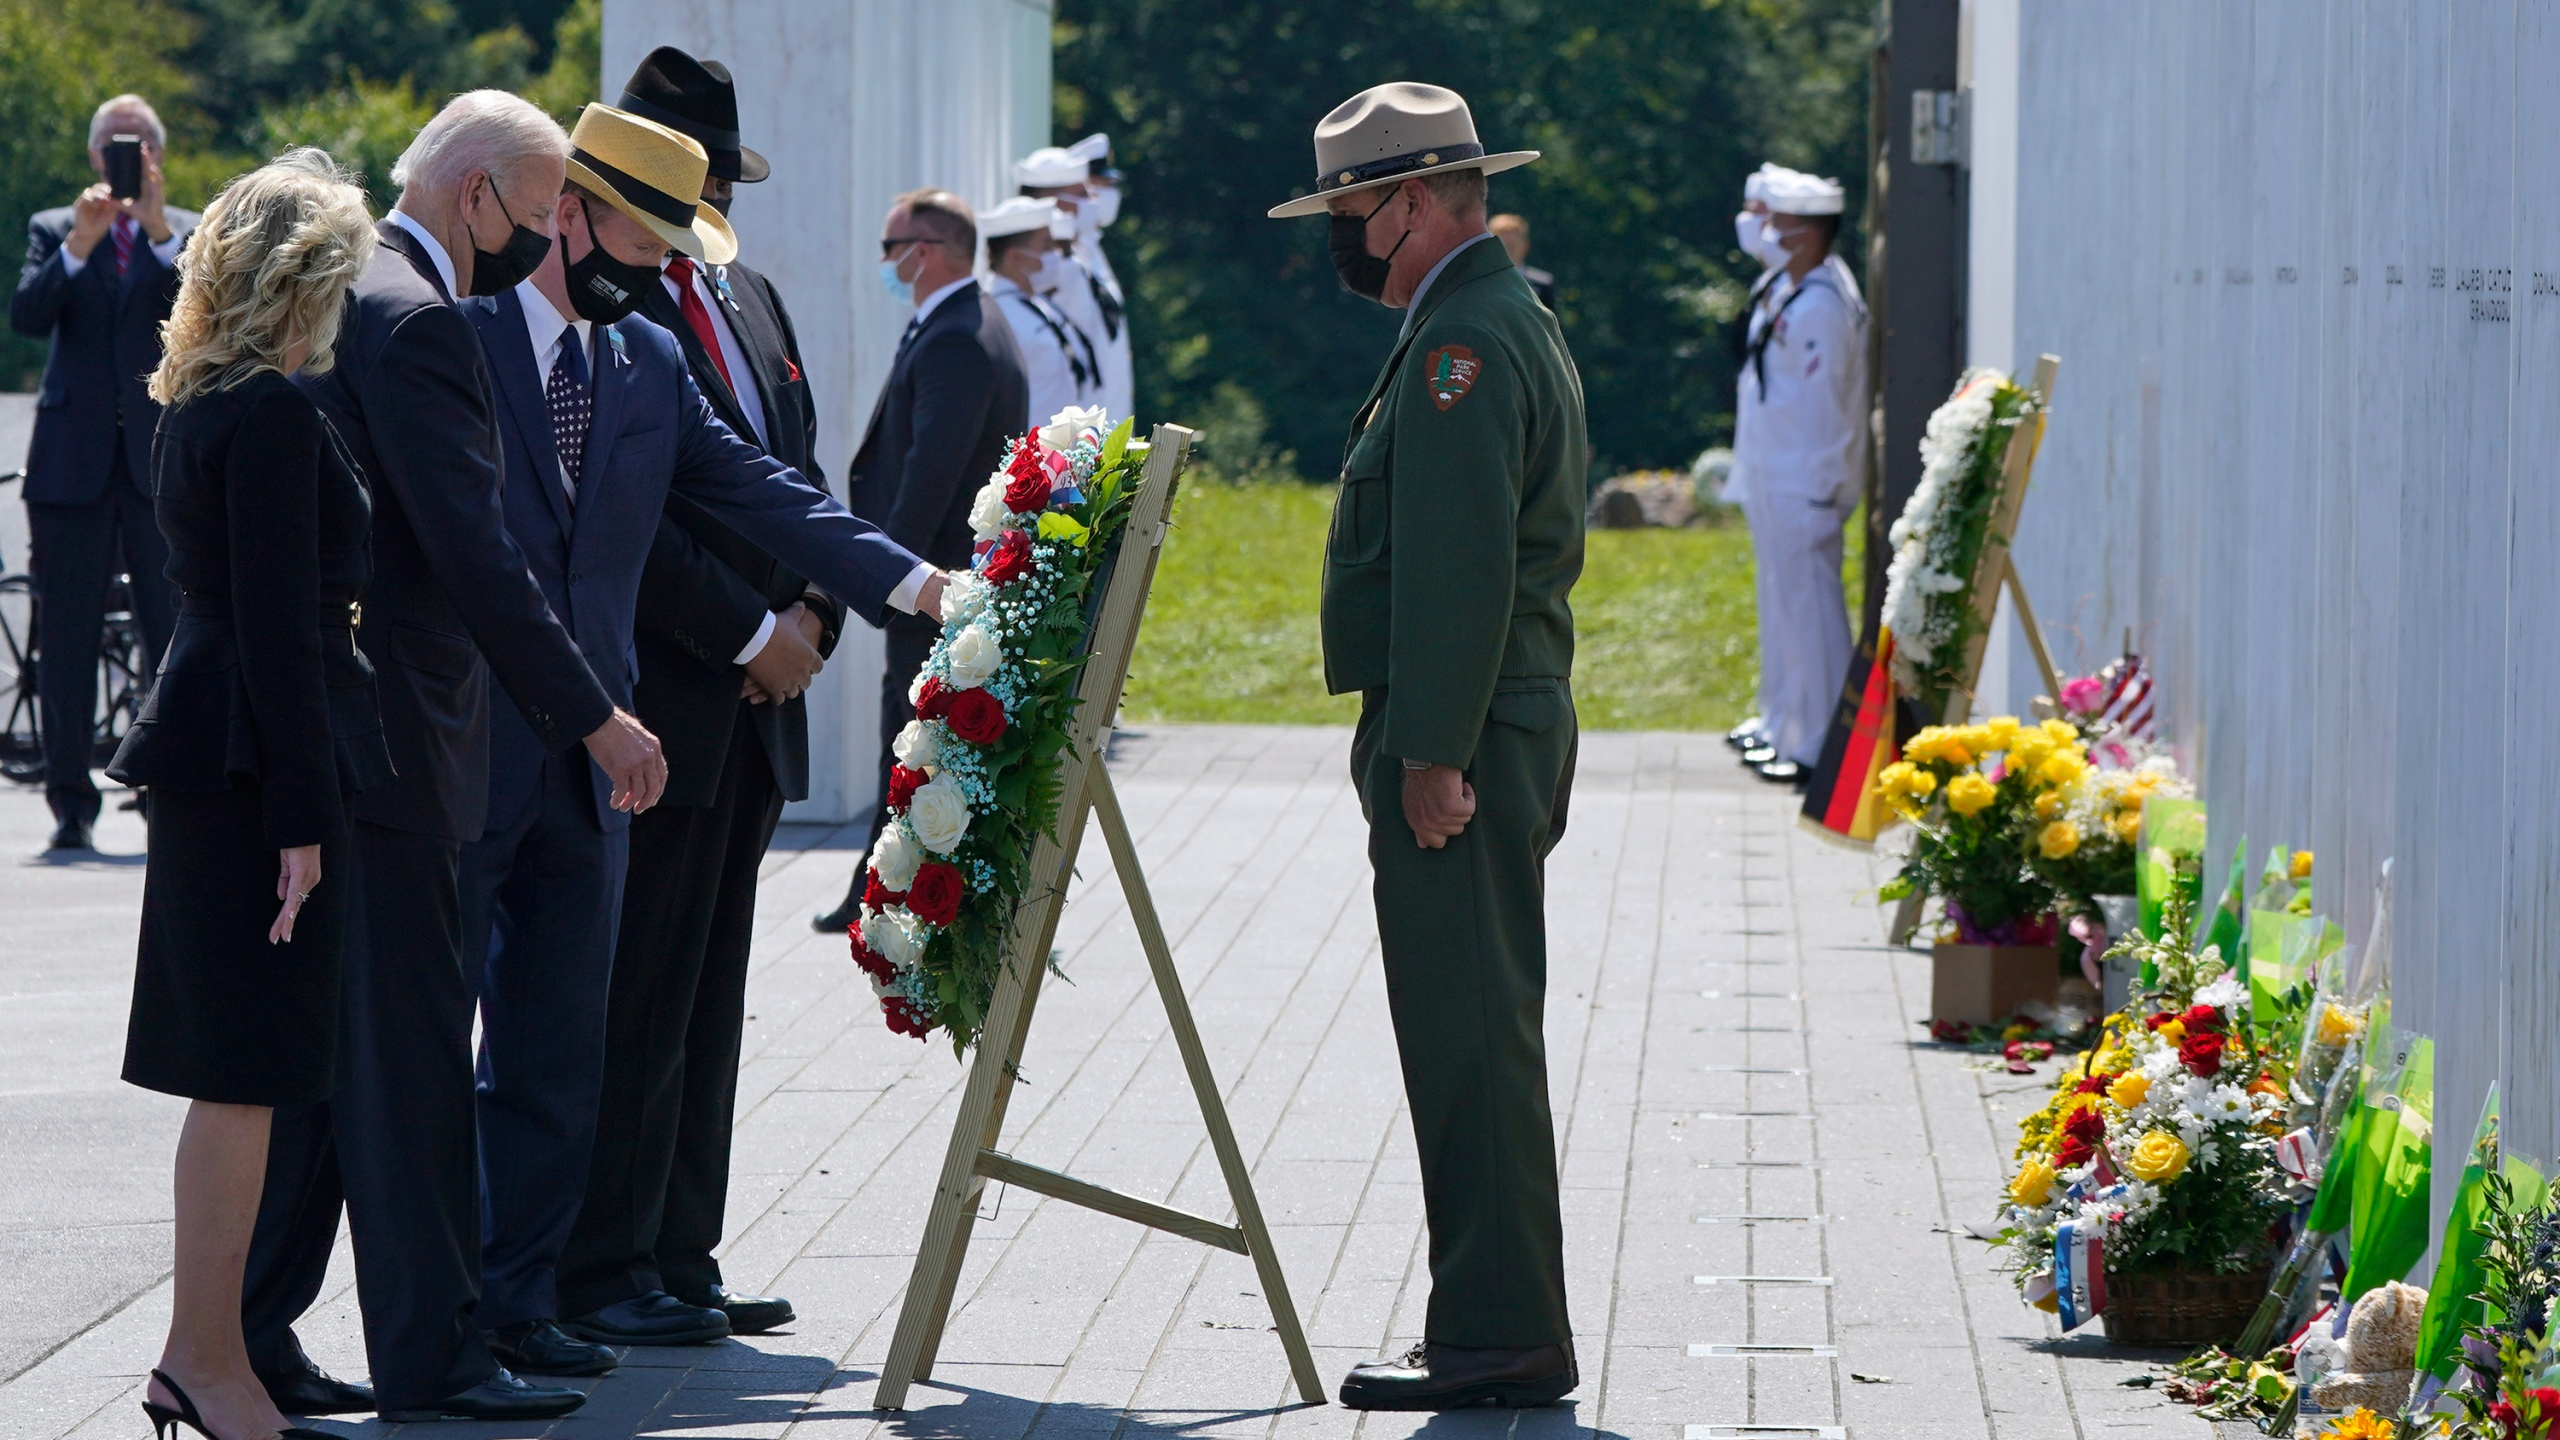 President Joe Biden, second from left, and First Lady Jill Biden, left, help place a wreath at the Wall of Names at the Flight 93 National Memorial with Gordon Felt, third from left, who lost his brother Edward Felt in the crash of Flight 93 in Shanksville, Pa., Saturday, Sept. 11, 2021. (AP Photo/Gene J. Puskar)